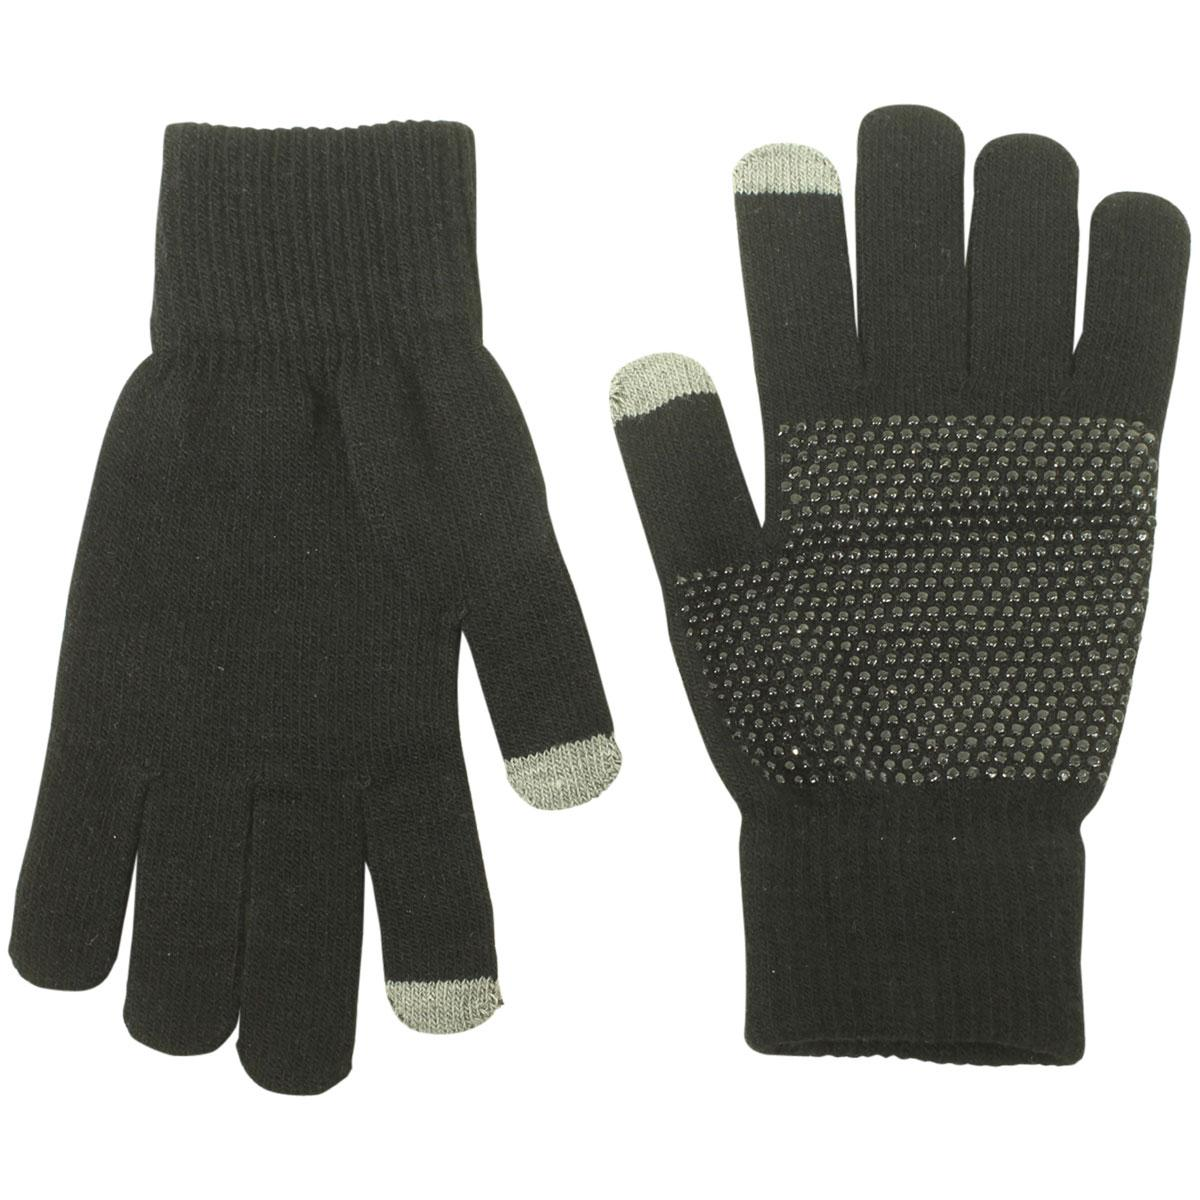 Image of Dorfman Pacific Men's Touchscreen Magic Knit Gloves - Black - One Size Fits Most